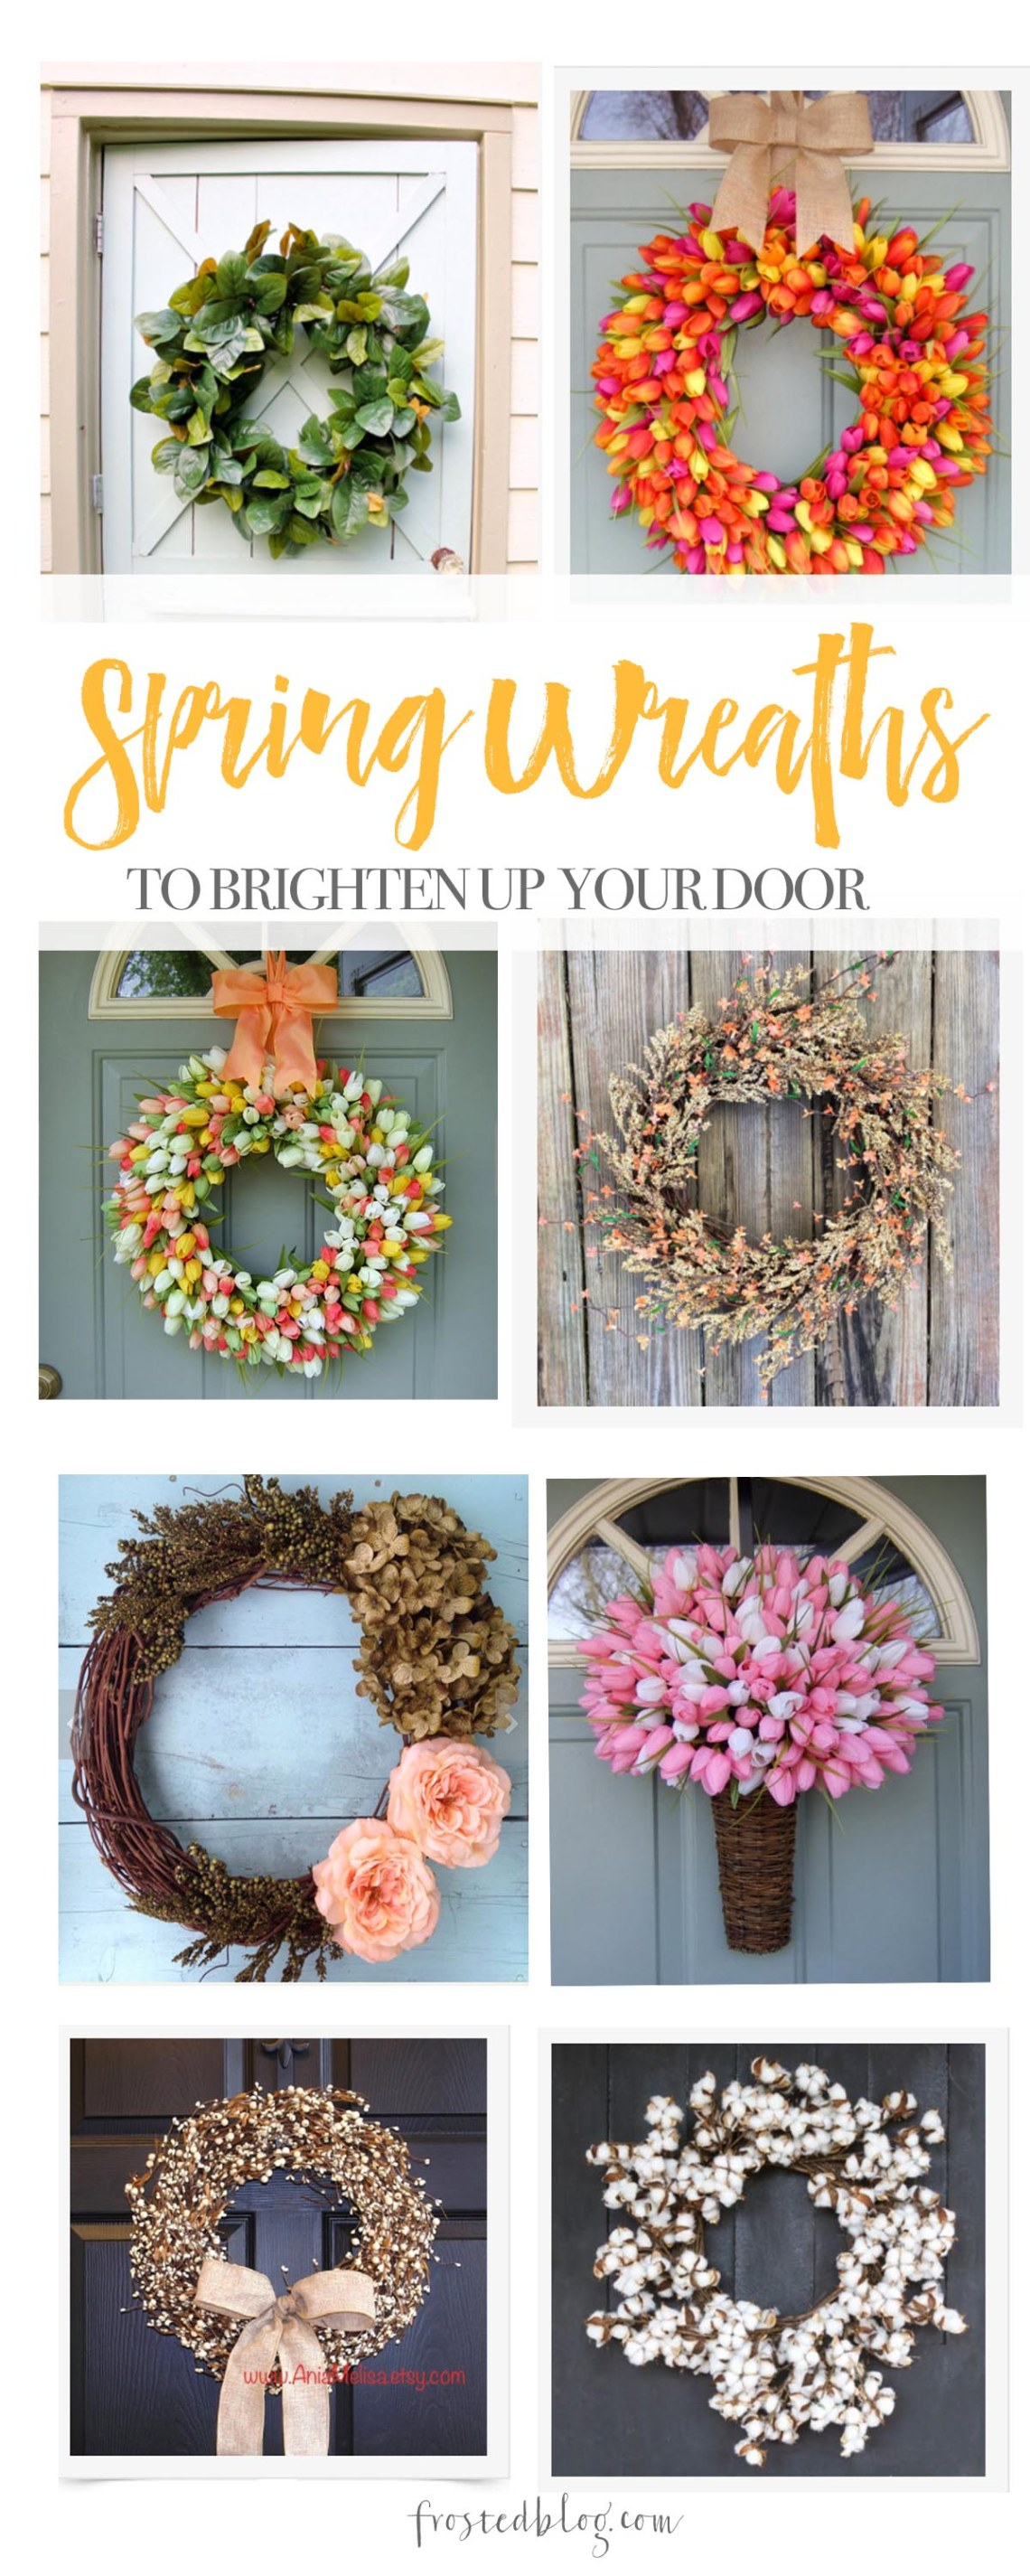 Spring Wreaths to Brighten Up Your Door - Home Decor Ideas and Inspiration via Misty Nelson @frostedevents frostedblog.com